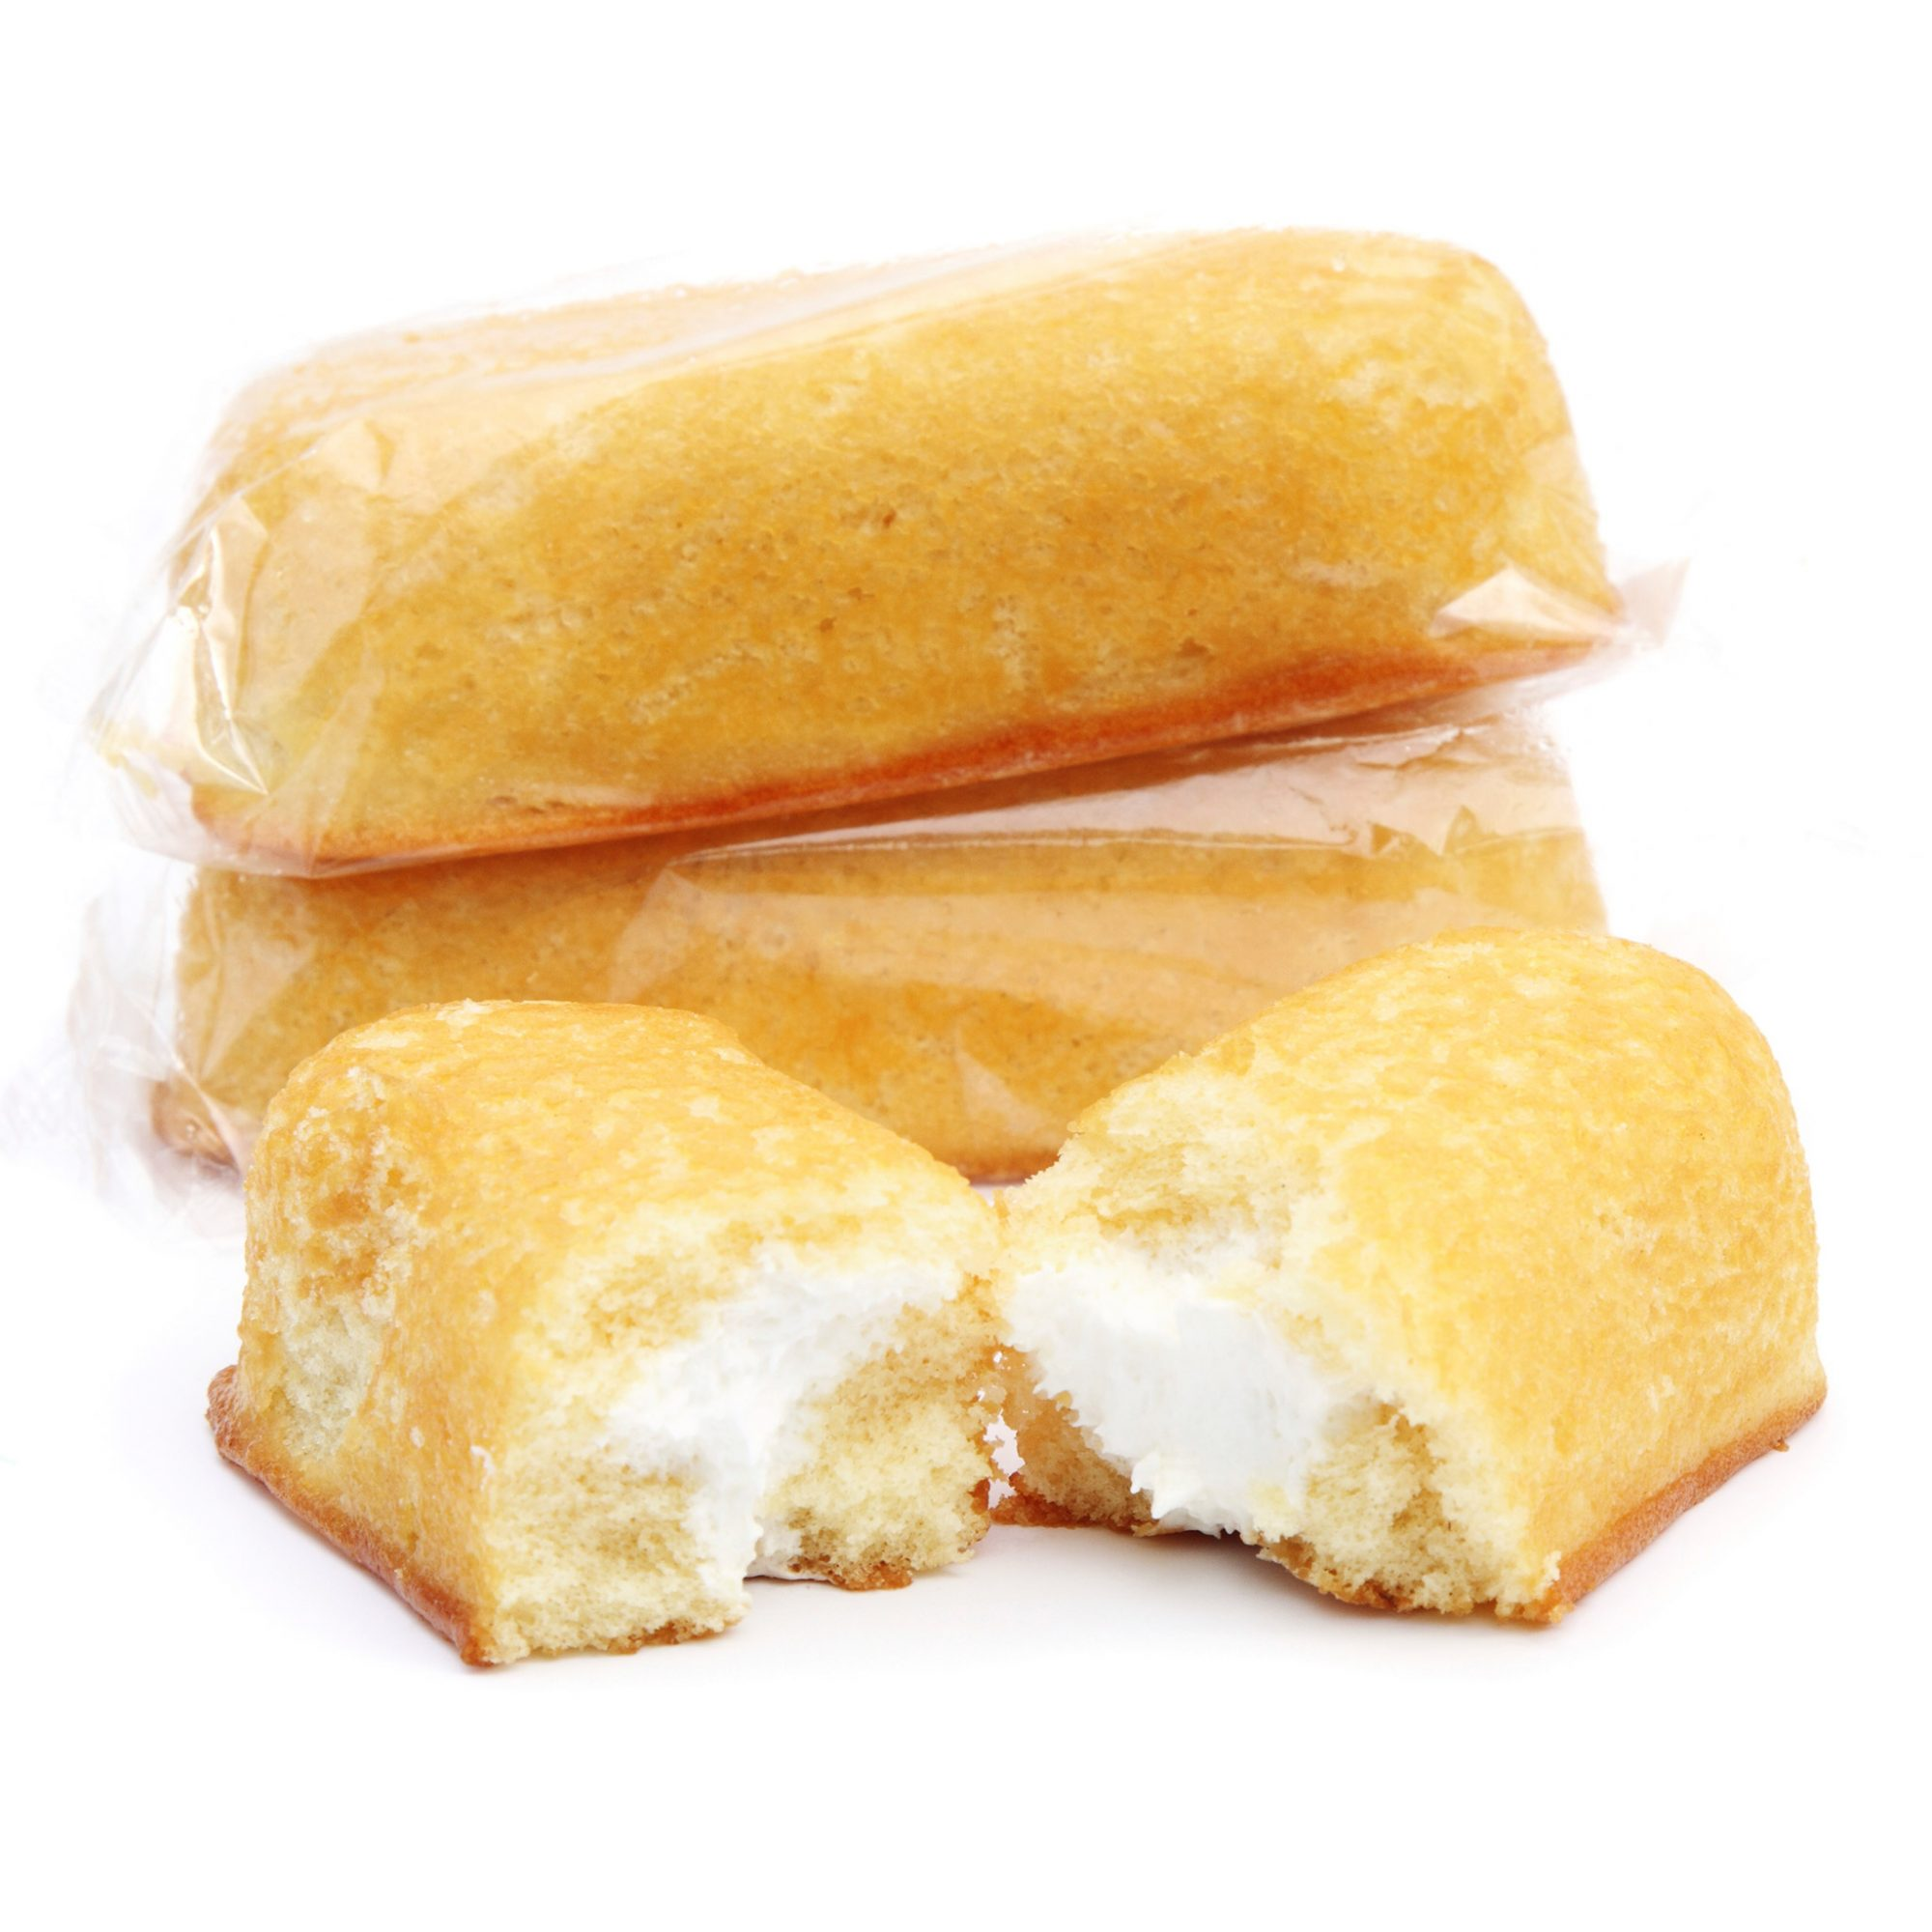 This Is What Happens To A Twinkie After 40 Years